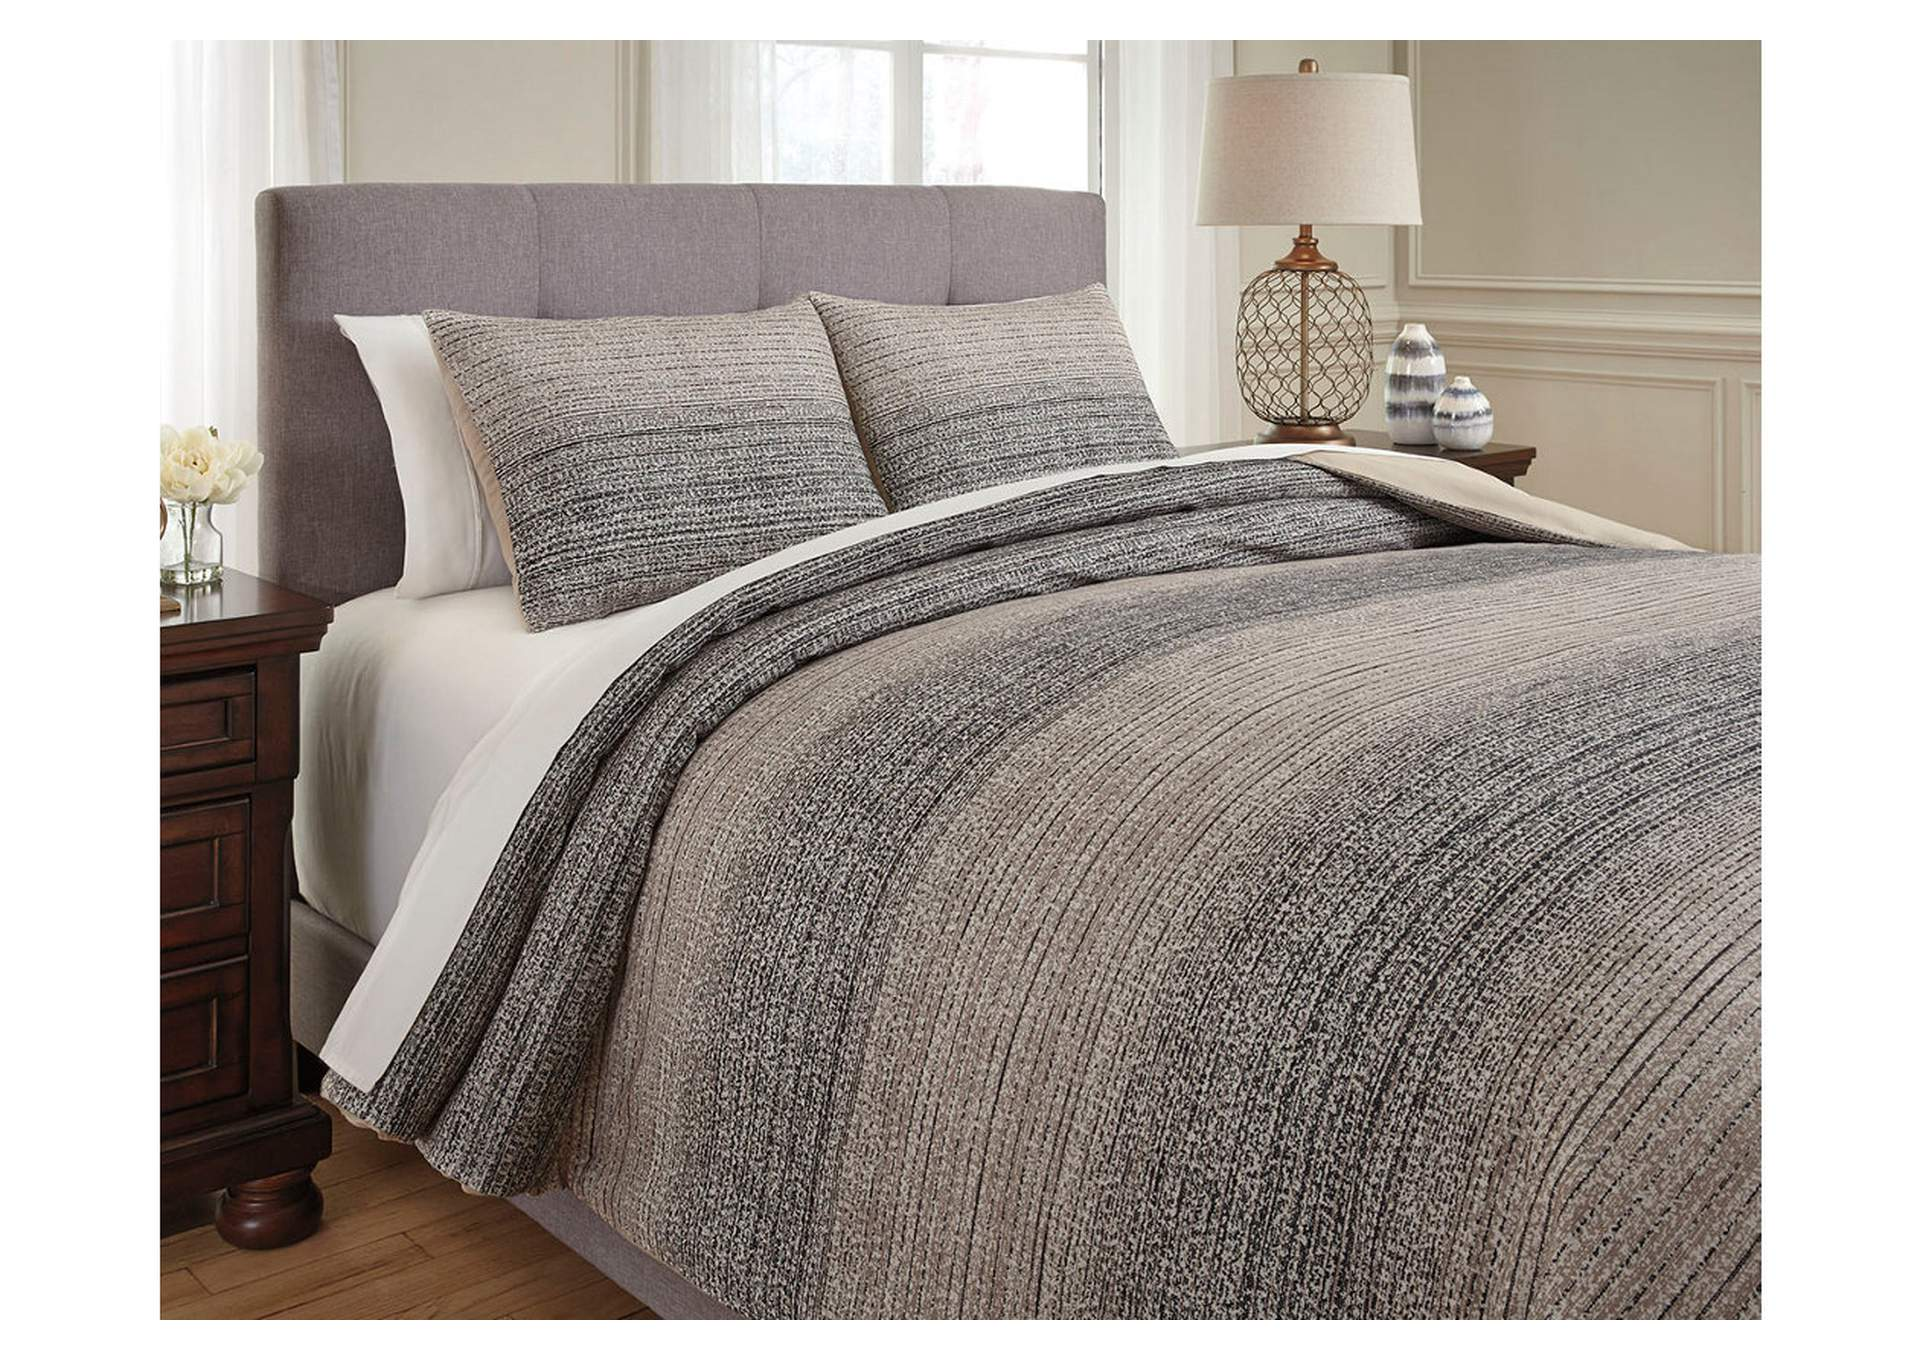 Arturo Natural/Charcoal Queen Duvet Cover Set,Signature Design By Ashley